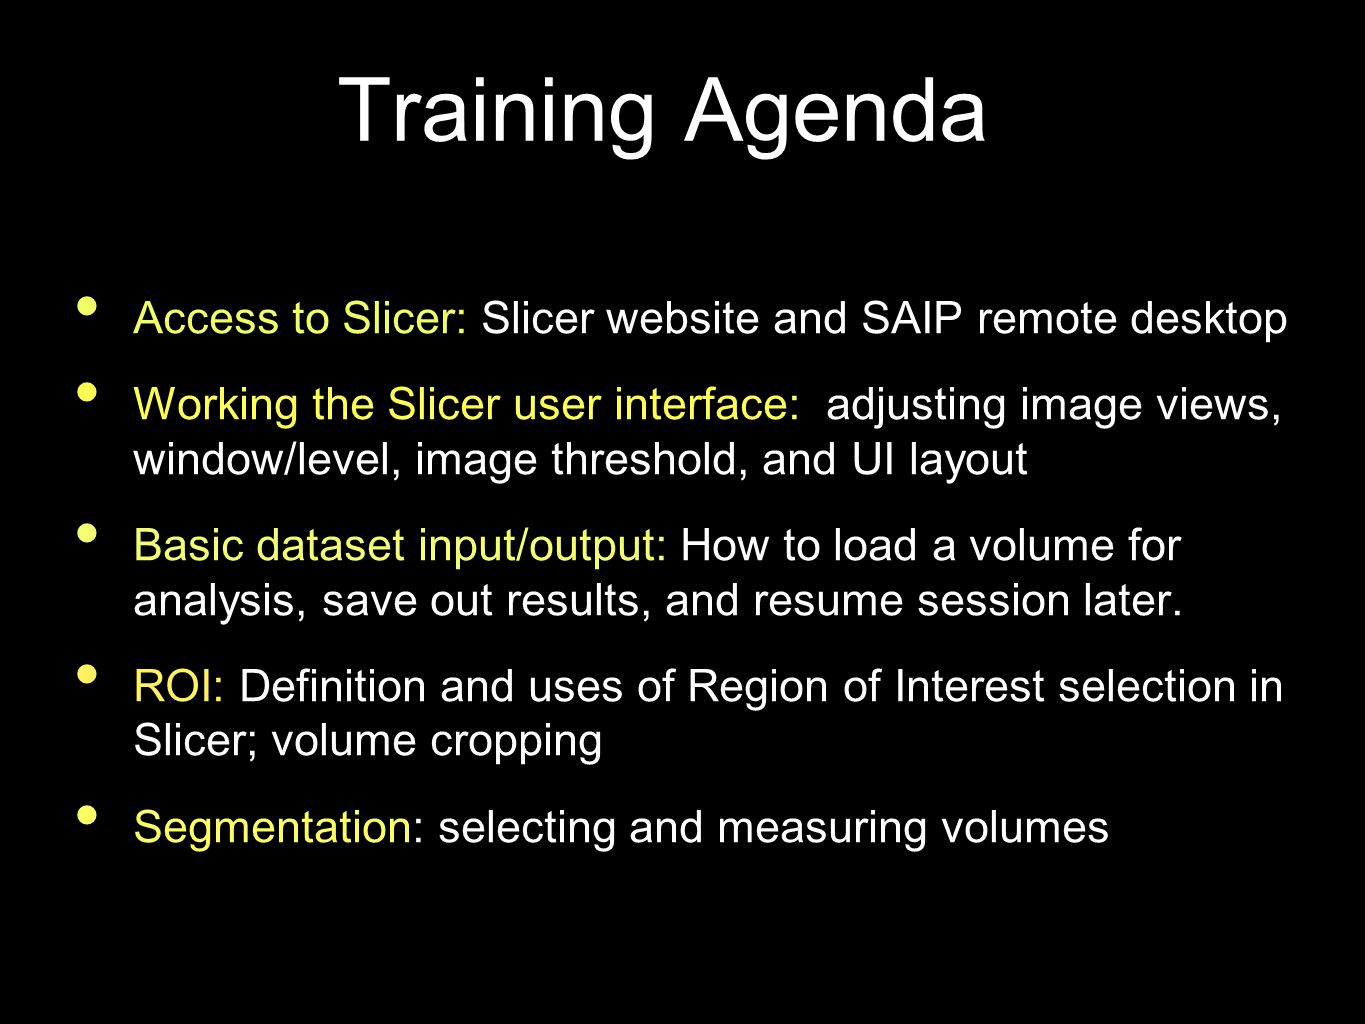 Training Agenda Access to Slicer: Slicer website and SAIP remote desktop Working the Slicer user interface: adjusting image views, window/level, image threshold, and UI layout Basic dataset input/output: How to load a volume for analysis, save out results, and resume session later.